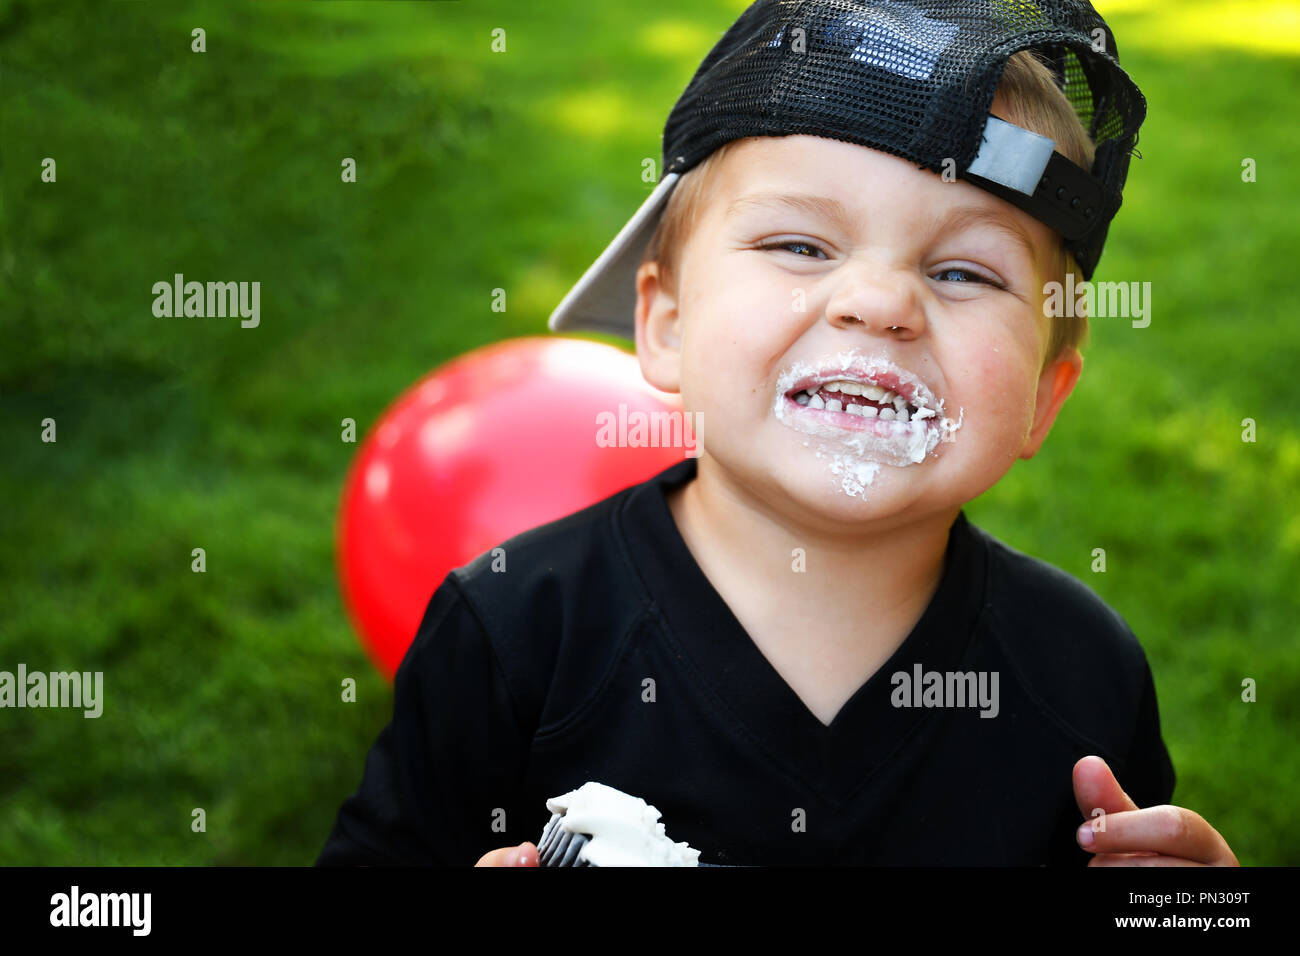 A smiling little boy with white frosting on his face Stock Photo